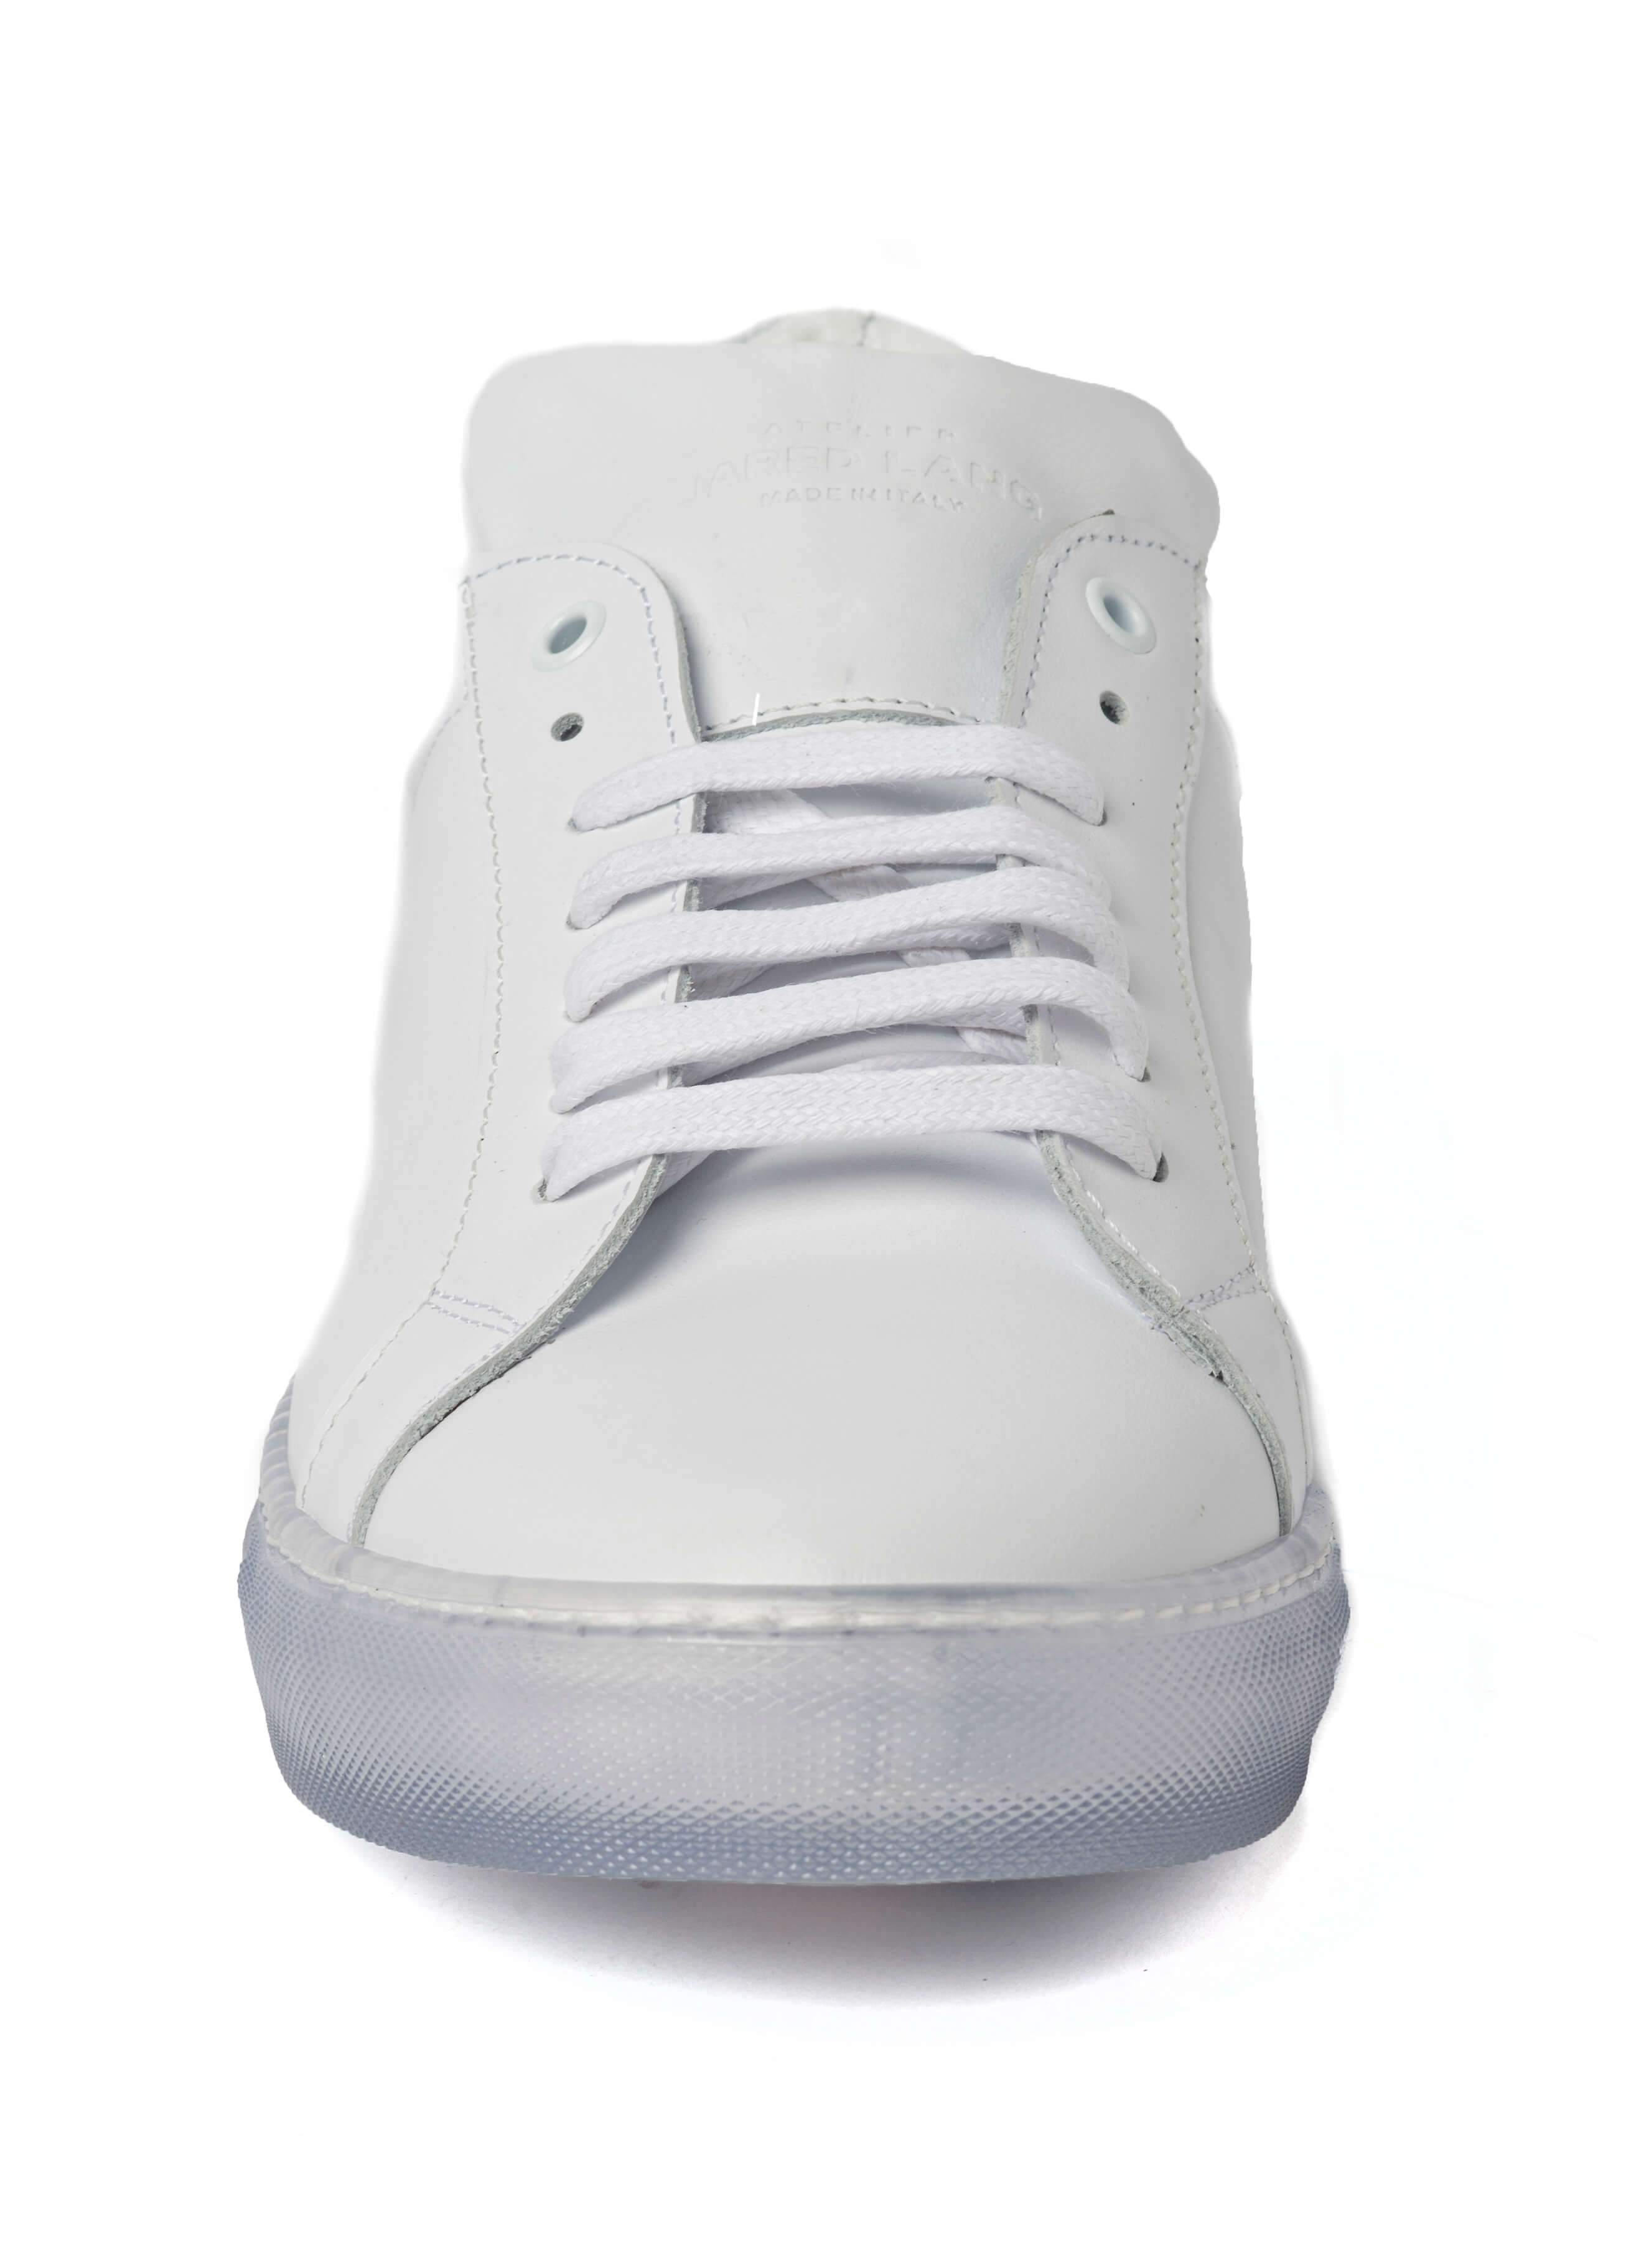 White Clear Sole Sneakers for Men - Front 1818-CRW - Jared Lang